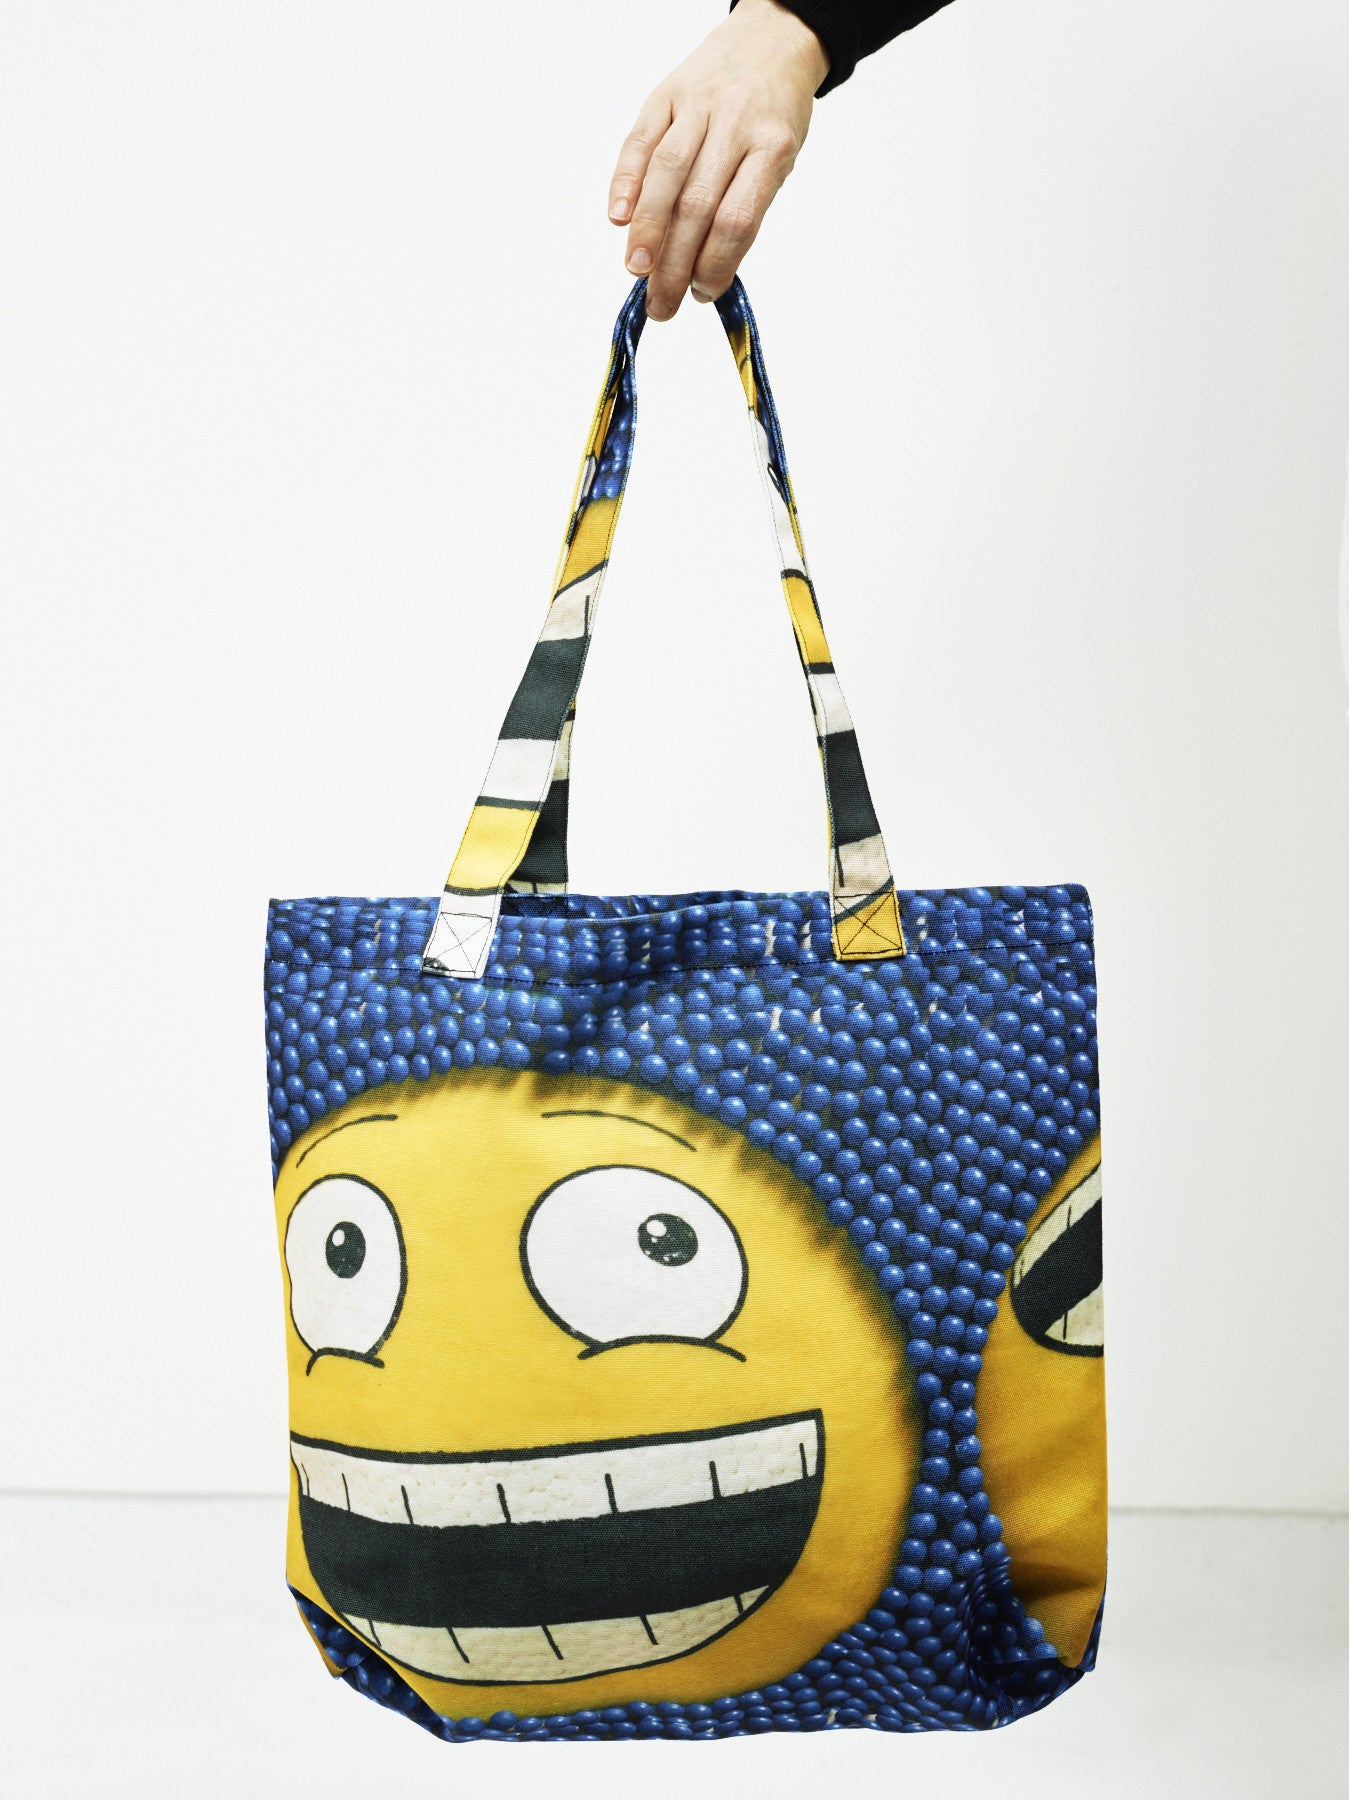 TOTE BAG BY PAUL PESCADOR